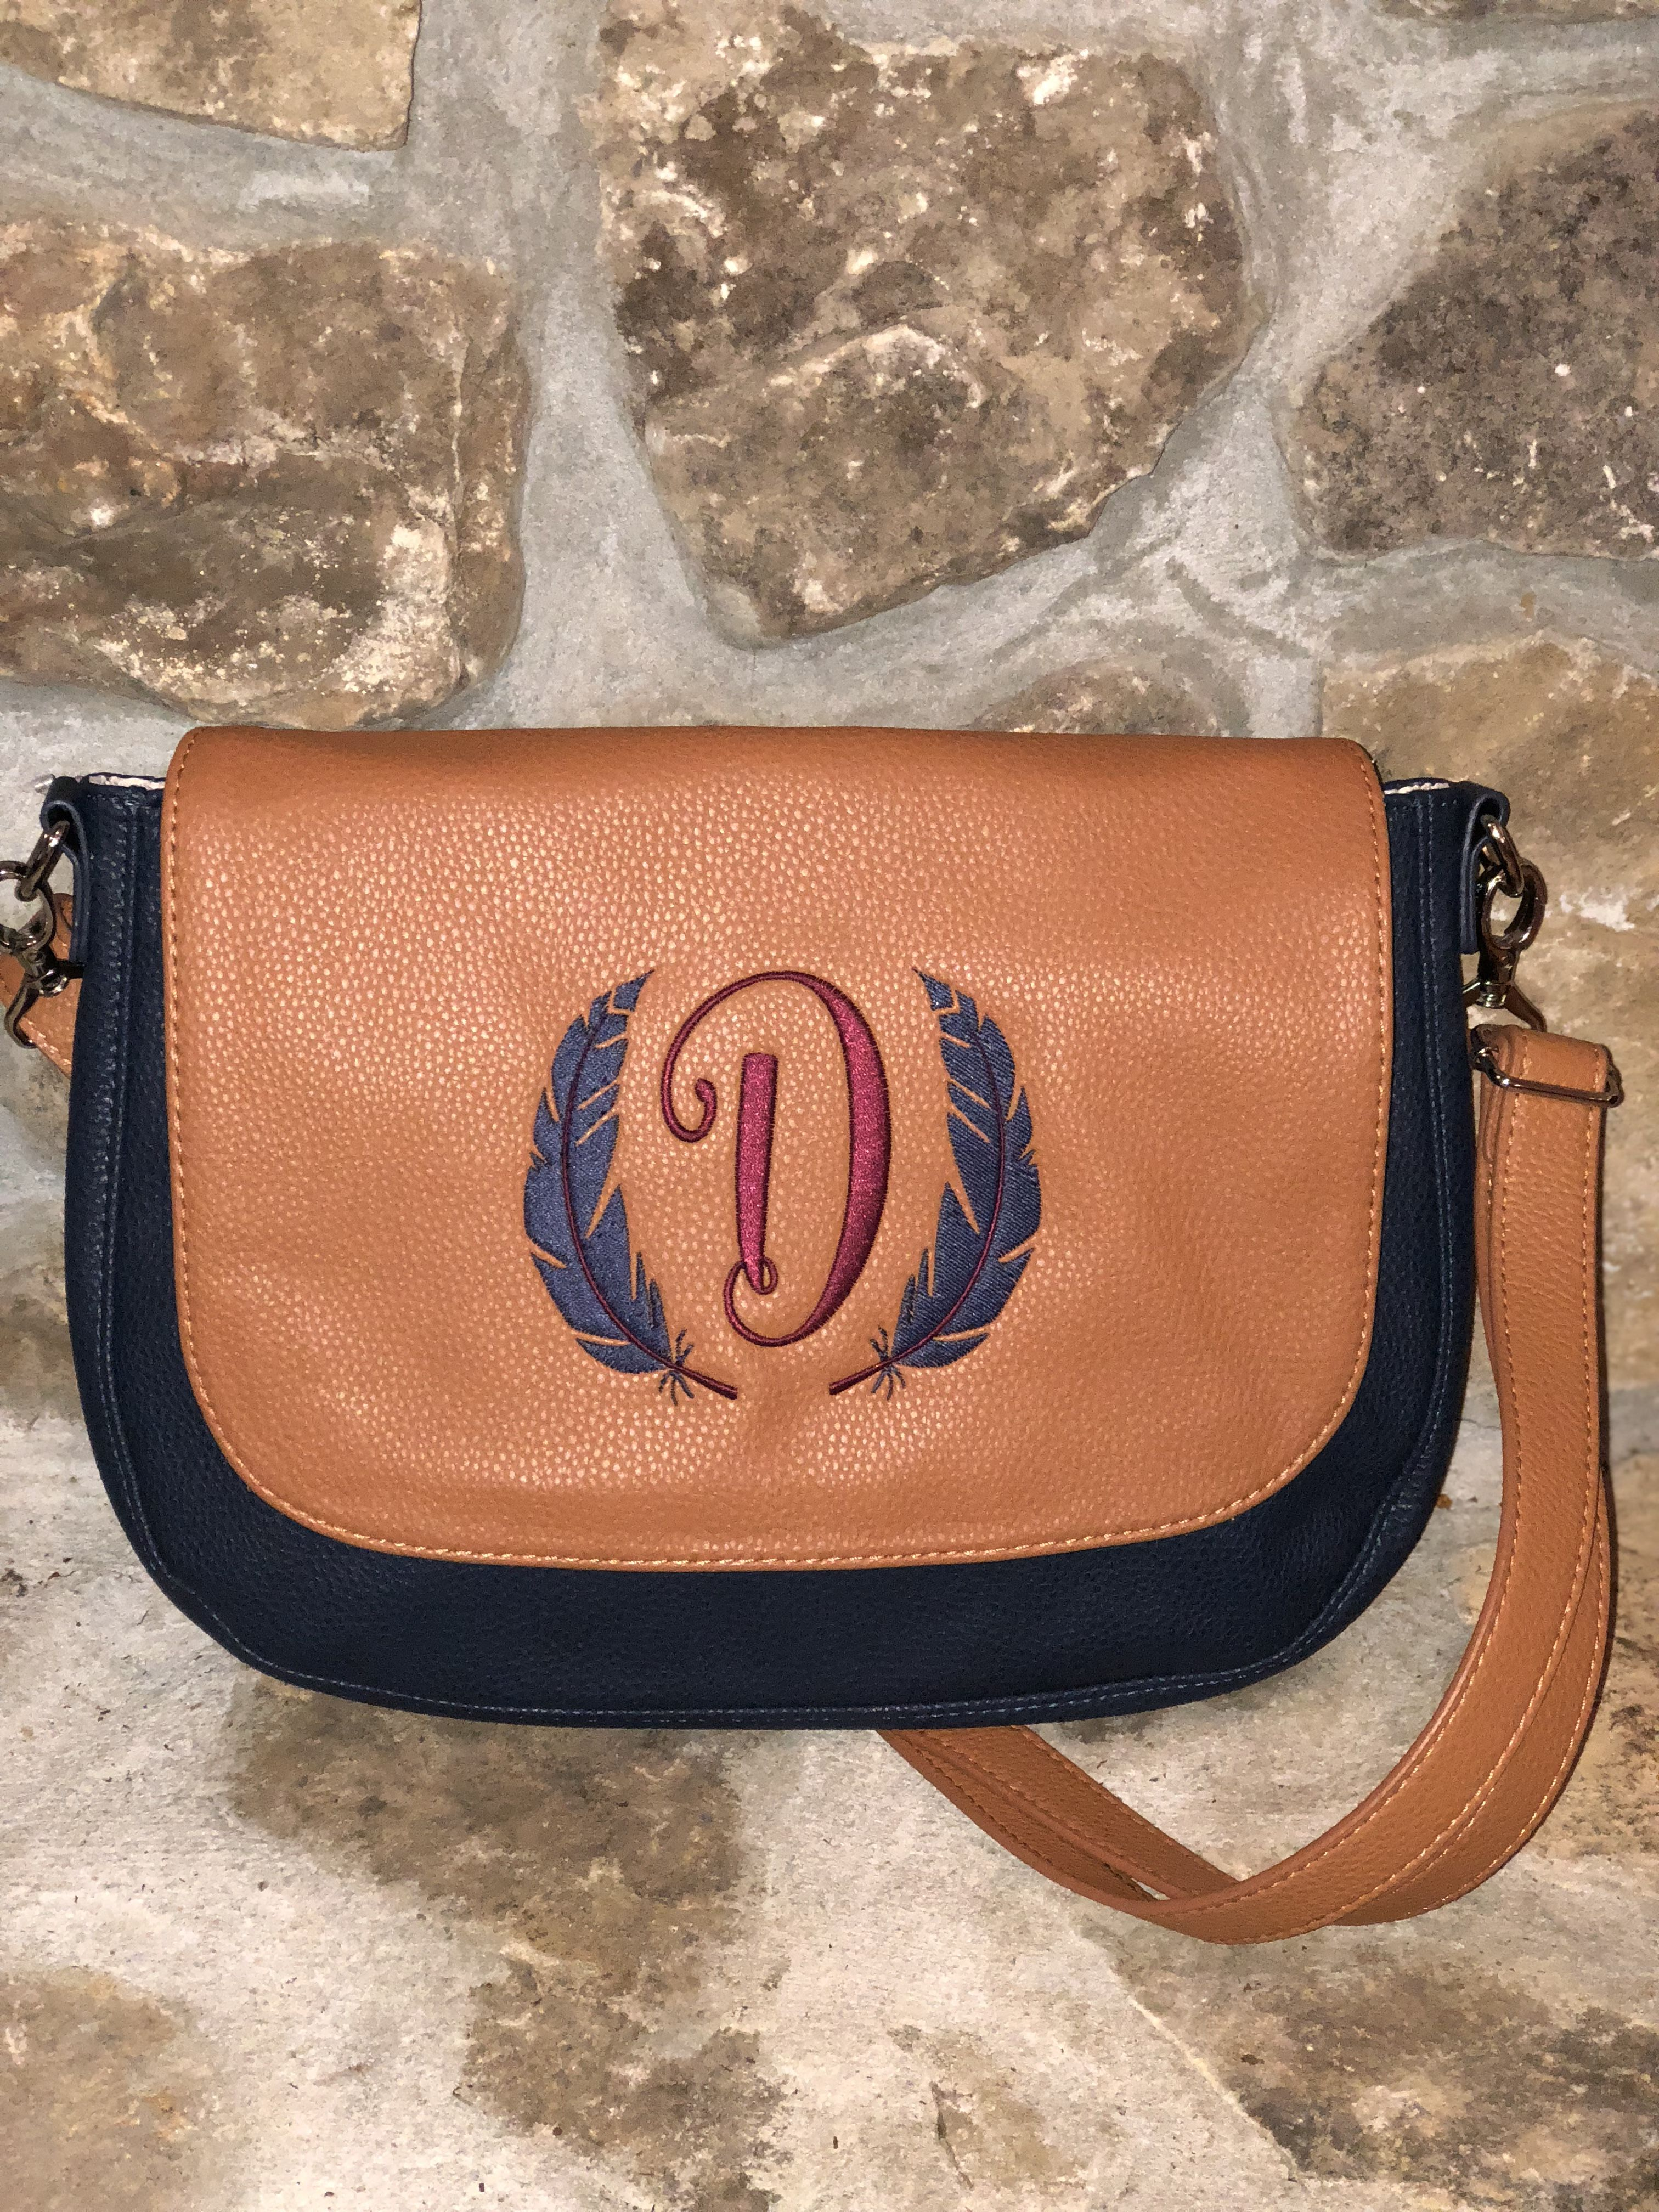 4bdd01b50 Studio Thirty-One Build your Own Bag-Classic! Navy base, Caramel Flap with  Navy and Merlot embroidery! Why you'll love it: Fashion a new look every  day with ...